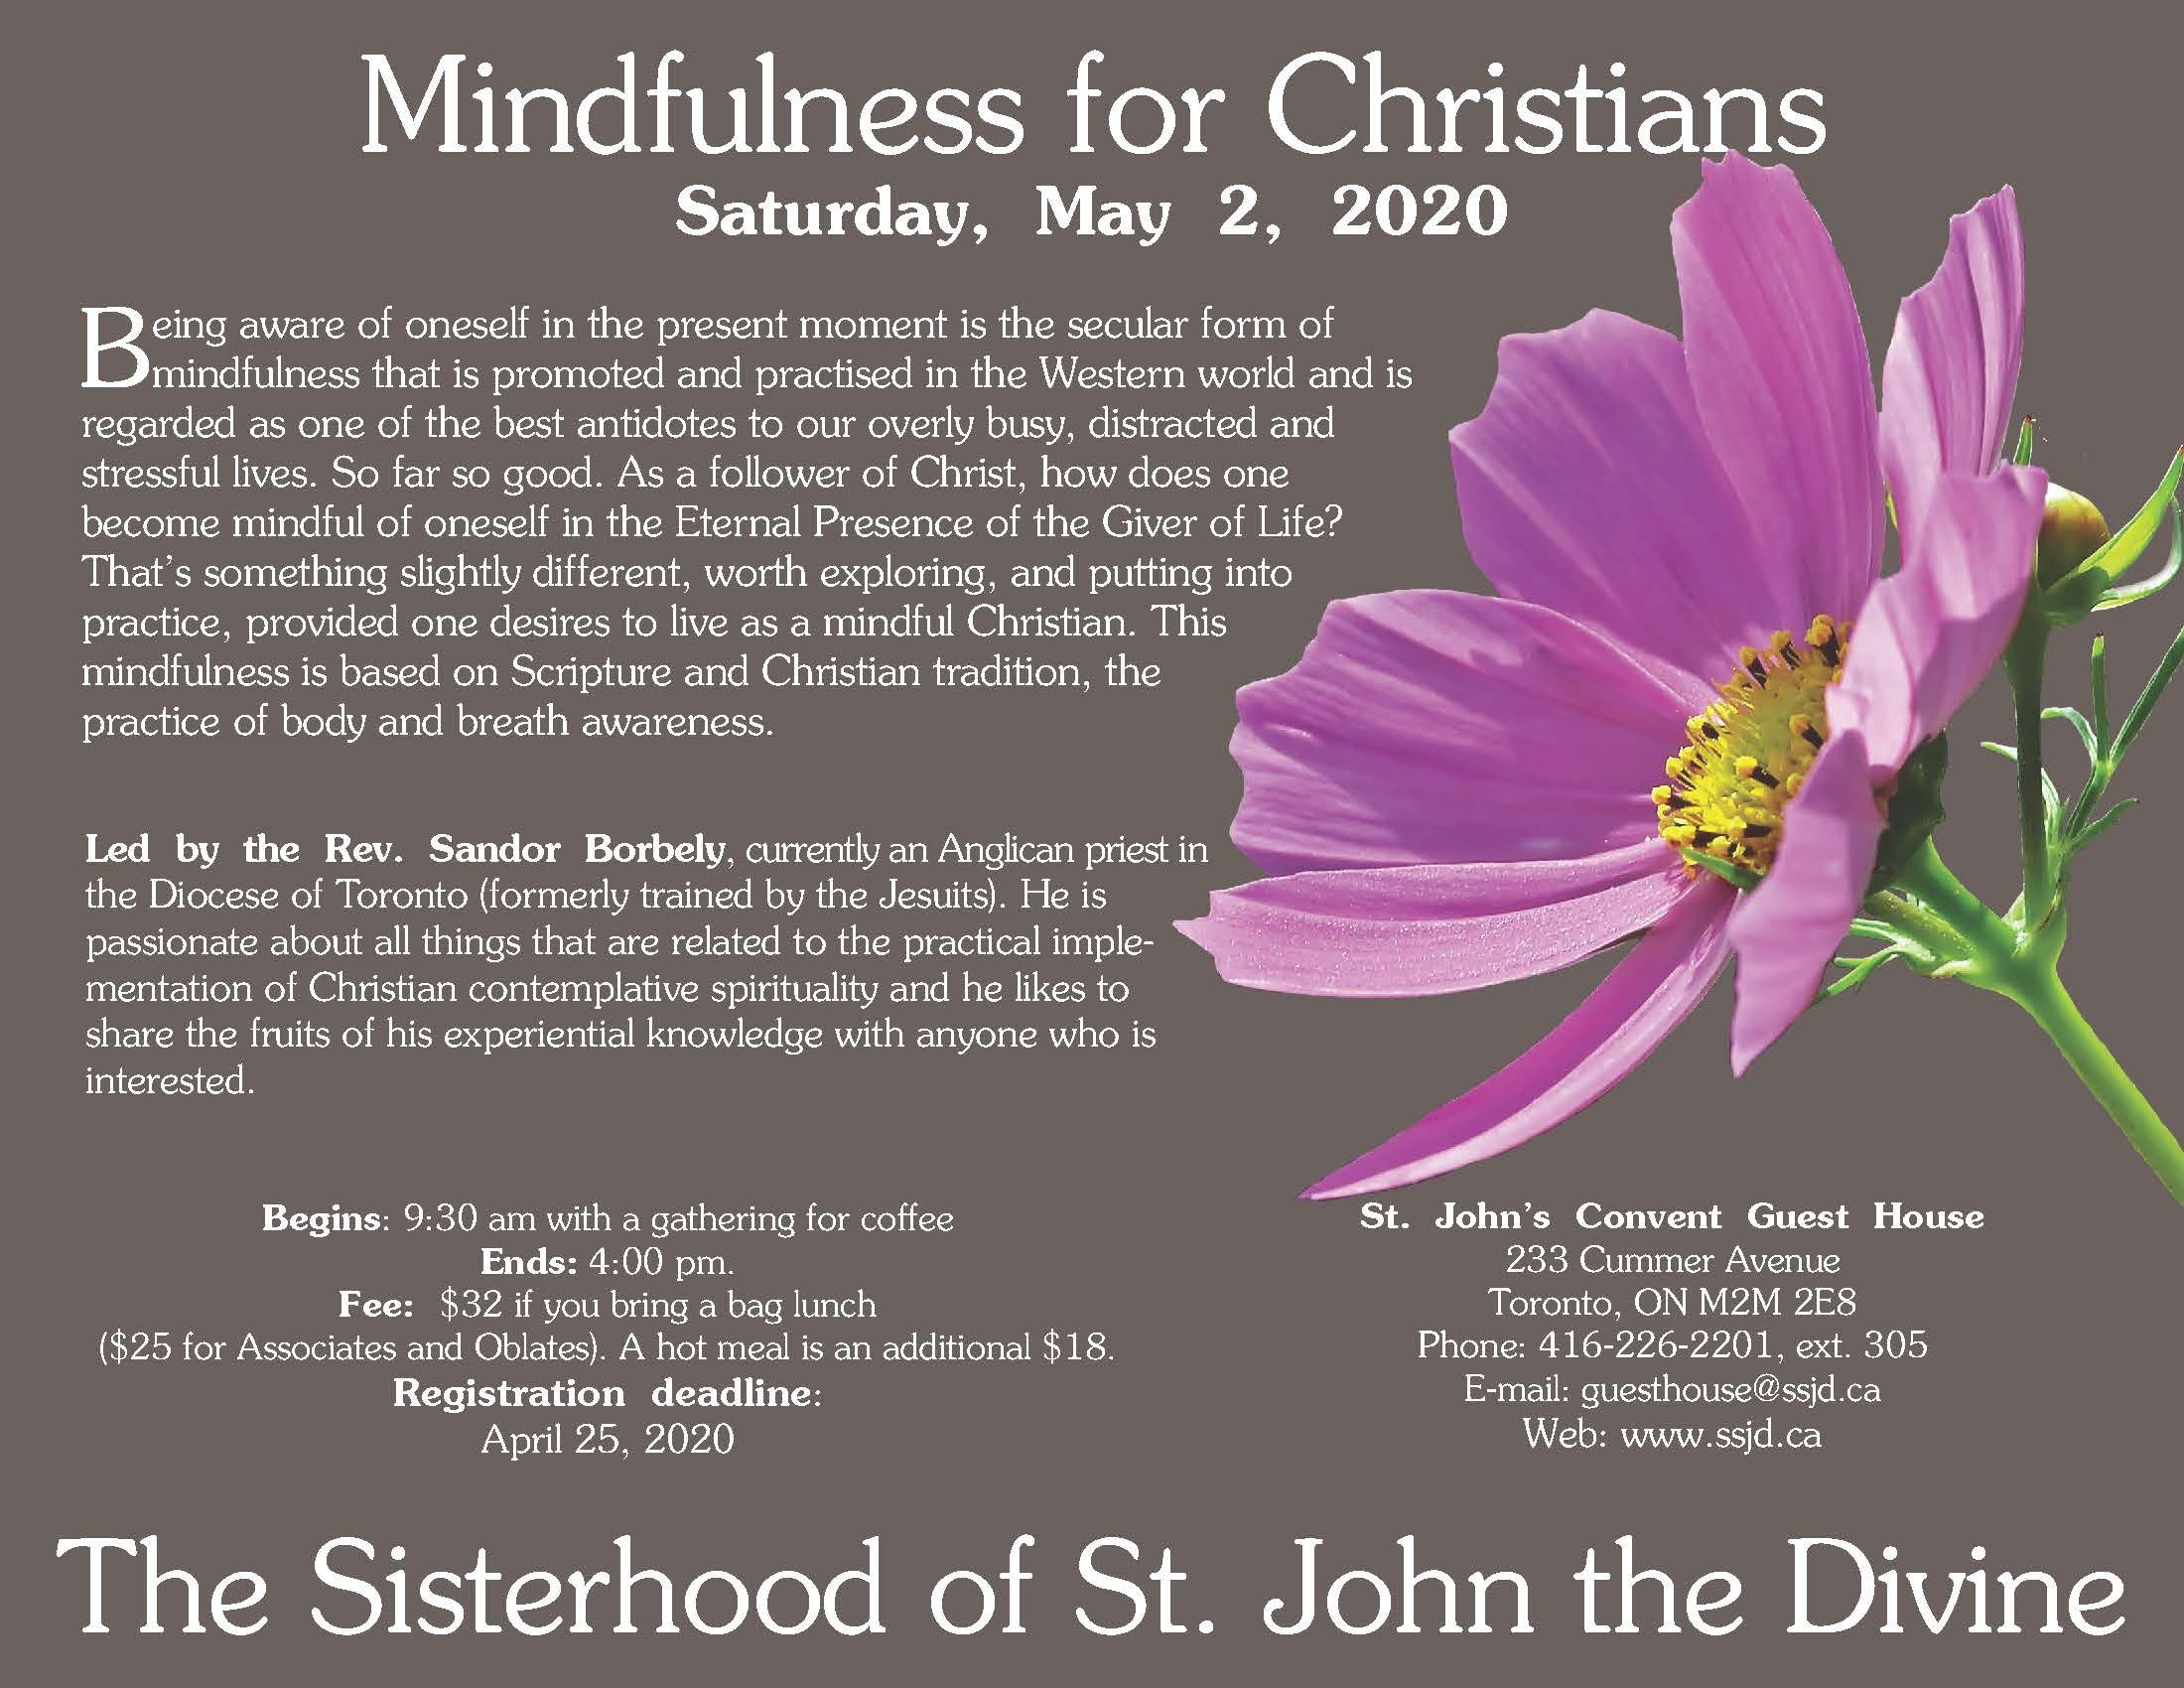 Mindfulness for Christians